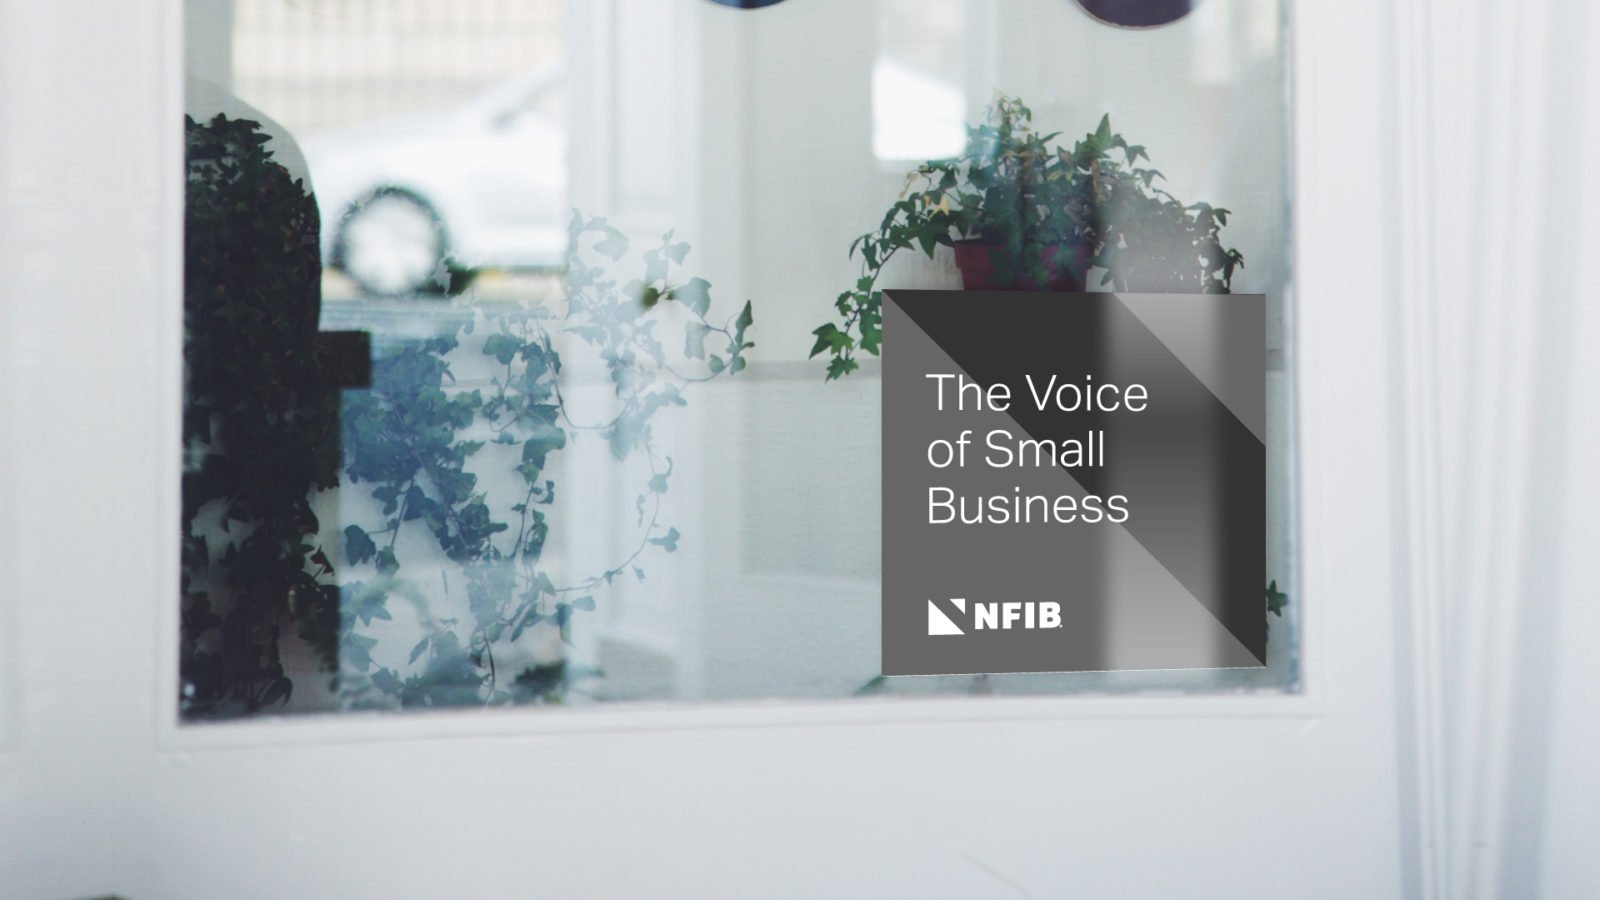 NFIB Independent and Small Business Association Branding and Strategy Members Window Sticker